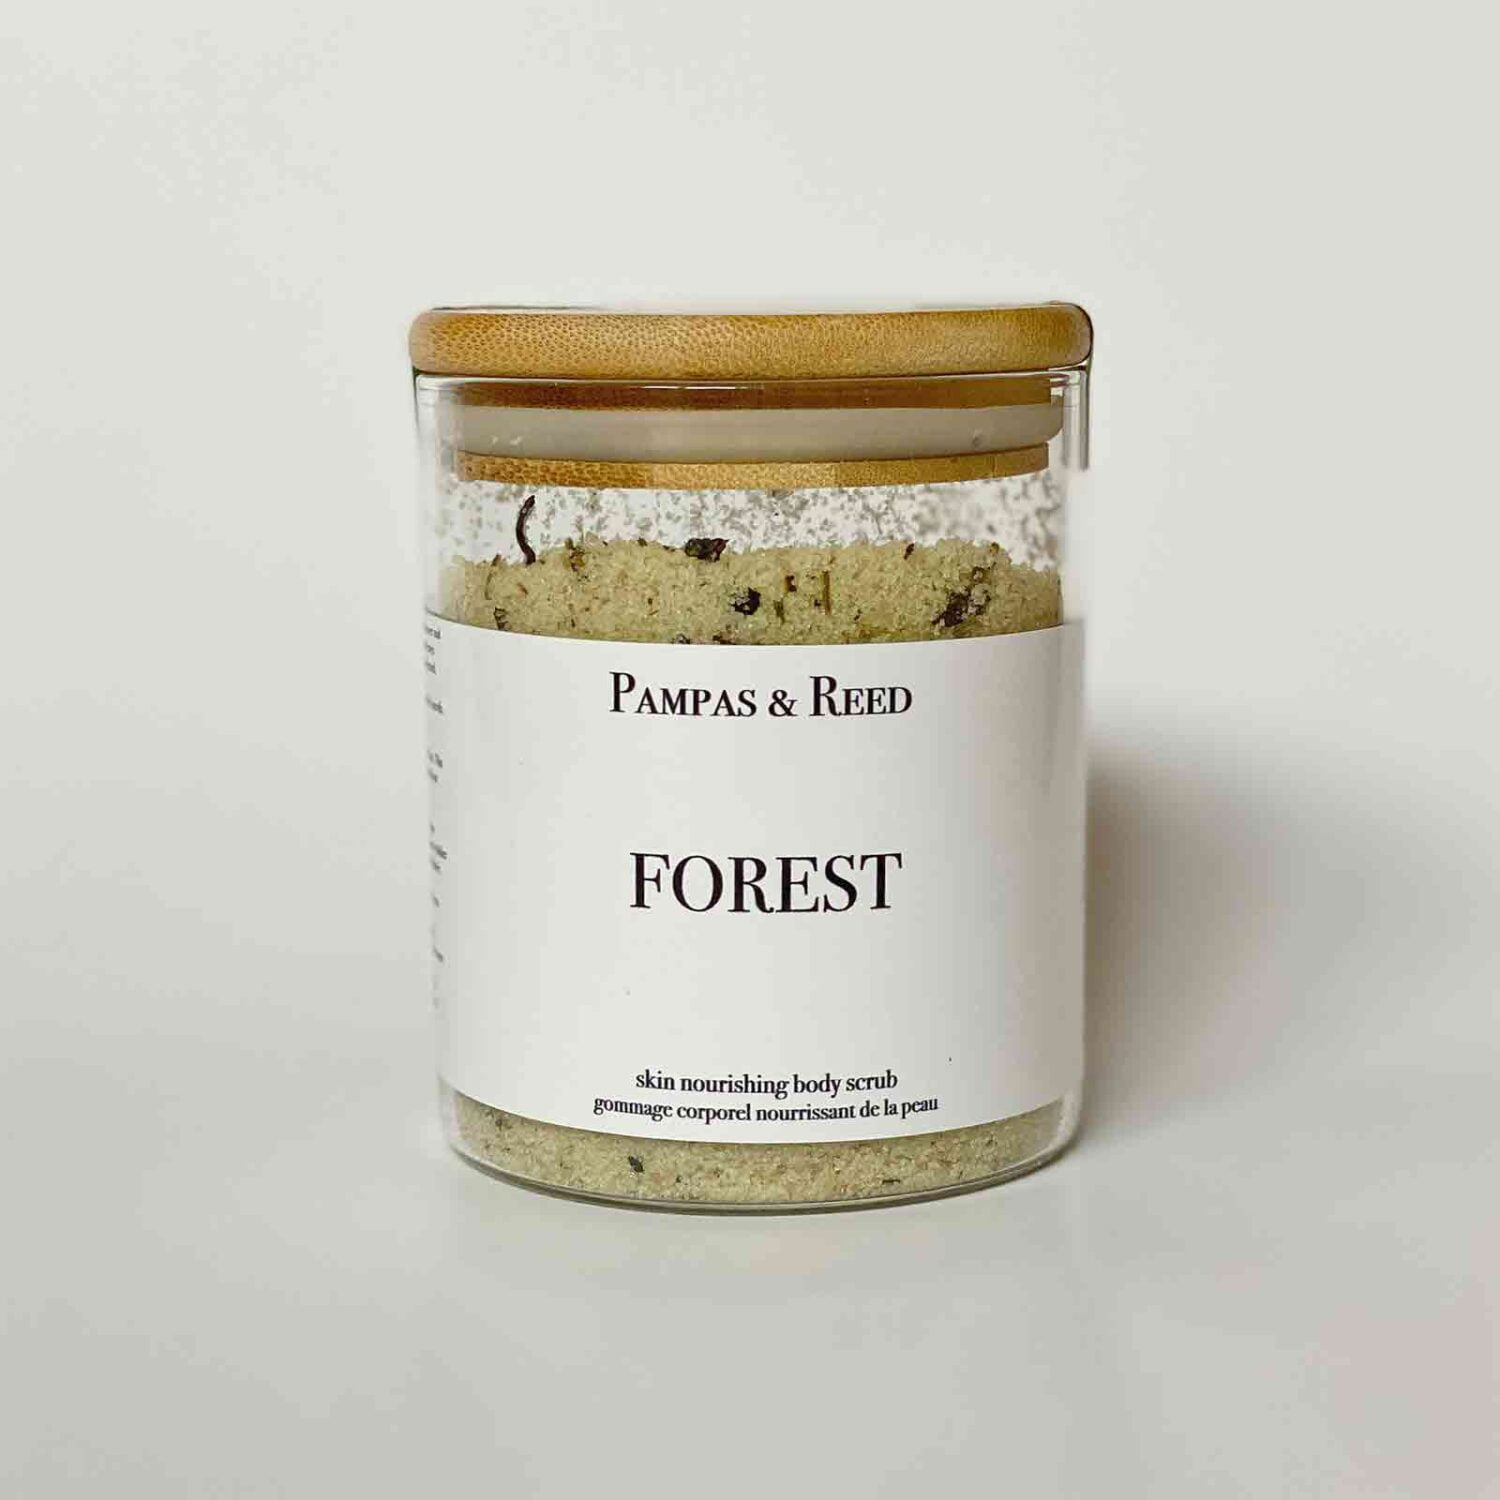 Pampas & Reed Forest body scrub